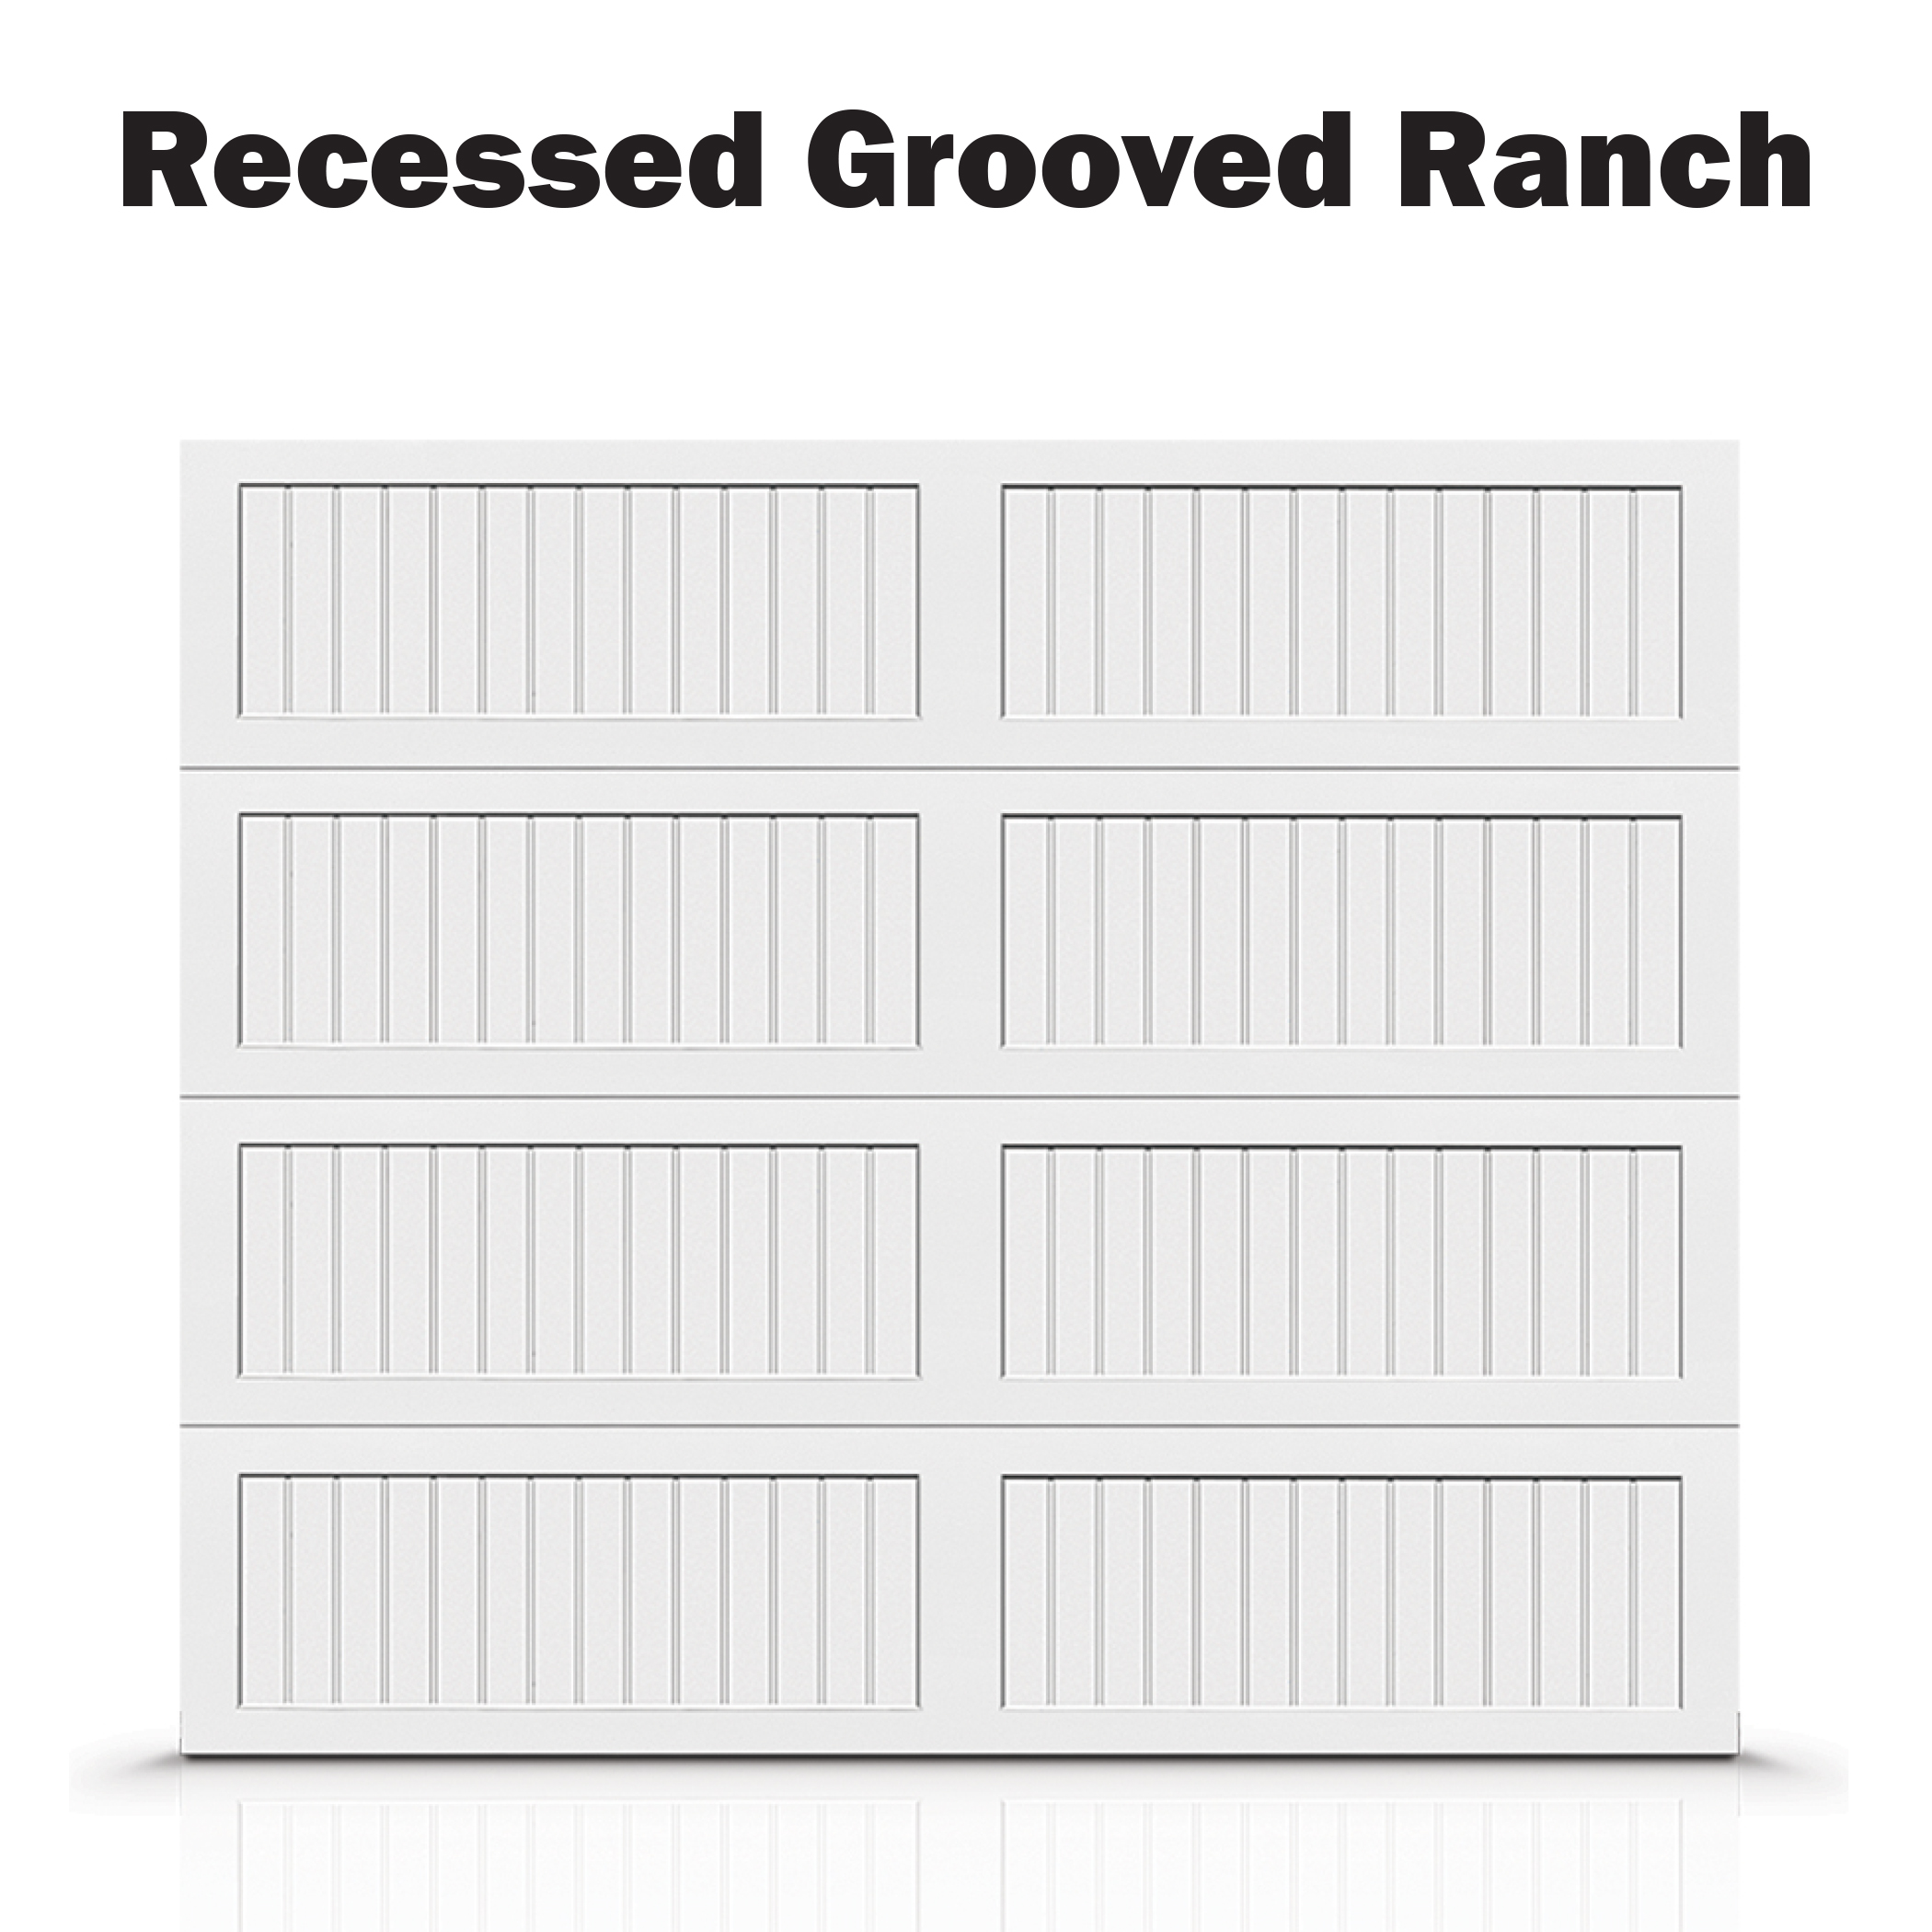 Recessed Grooved Ranch - Classic.jpg